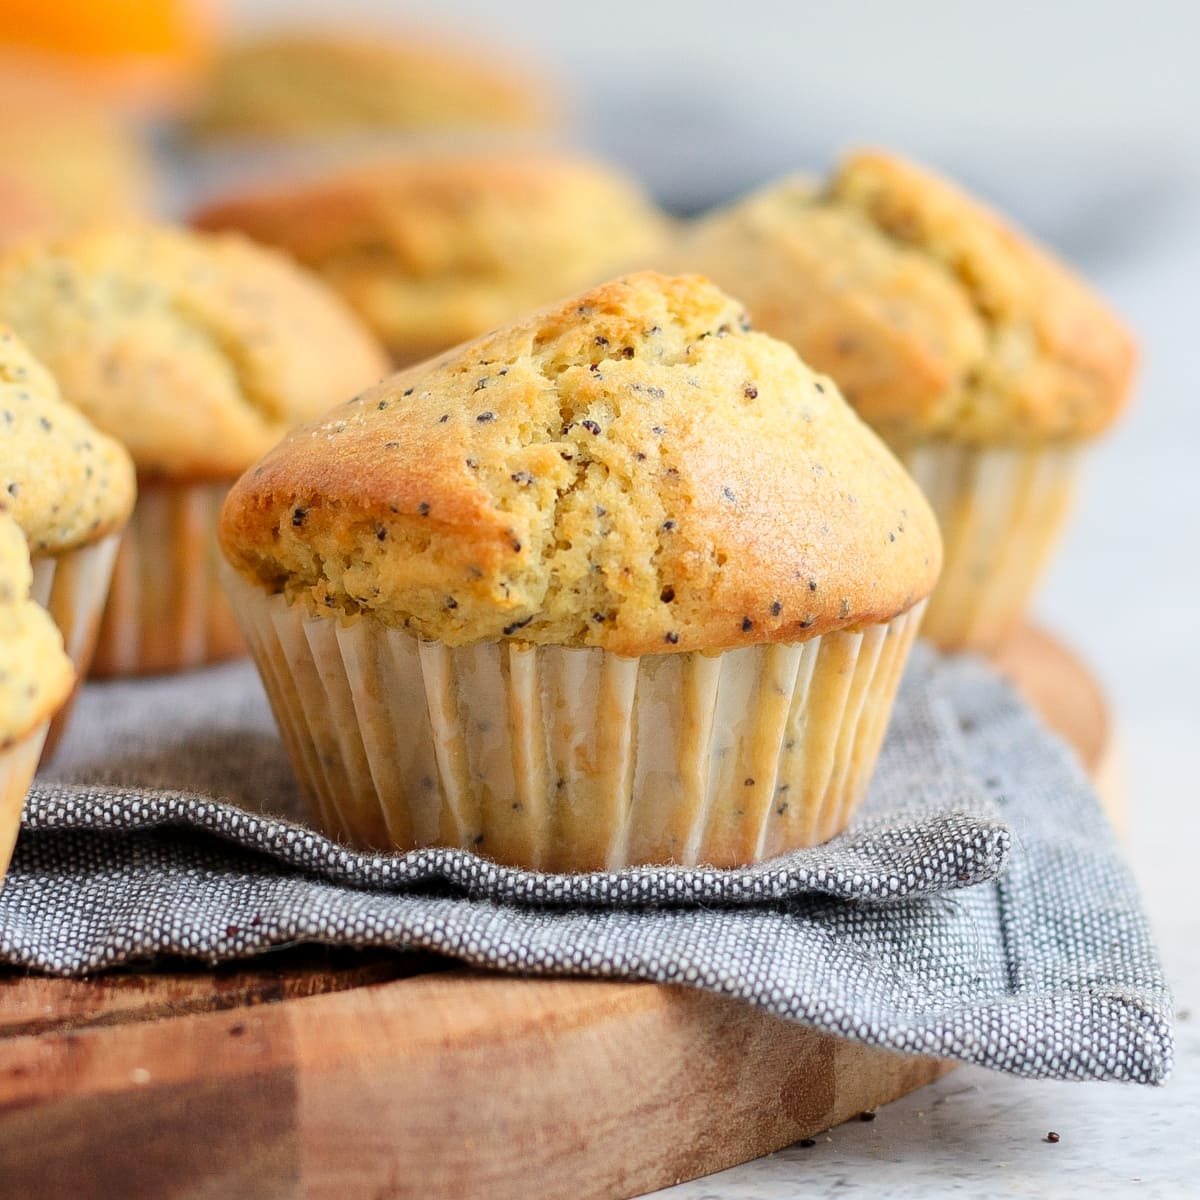 Close up on a muffin over a grey napkin and wooden board.